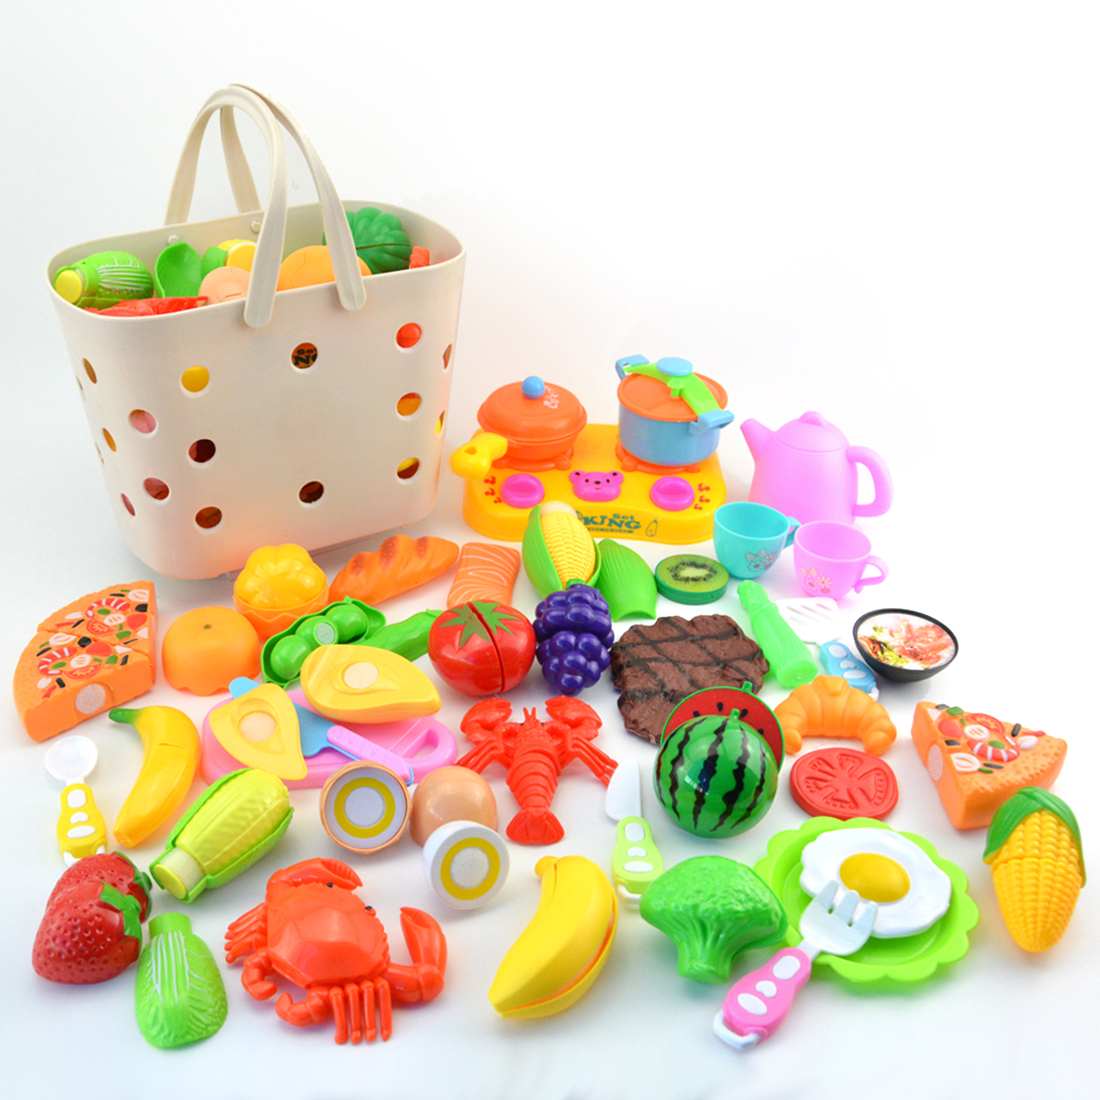 42Pcs Children Pretend Play Kitchen Toys Peelable Fruits Vegetables Series Set with Basket for Kids Learning Cooking Skills kits42Pcs Children Pretend Play Kitchen Toys Peelable Fruits Vegetables Series Set with Basket for Kids Learning Cooking Skills kits